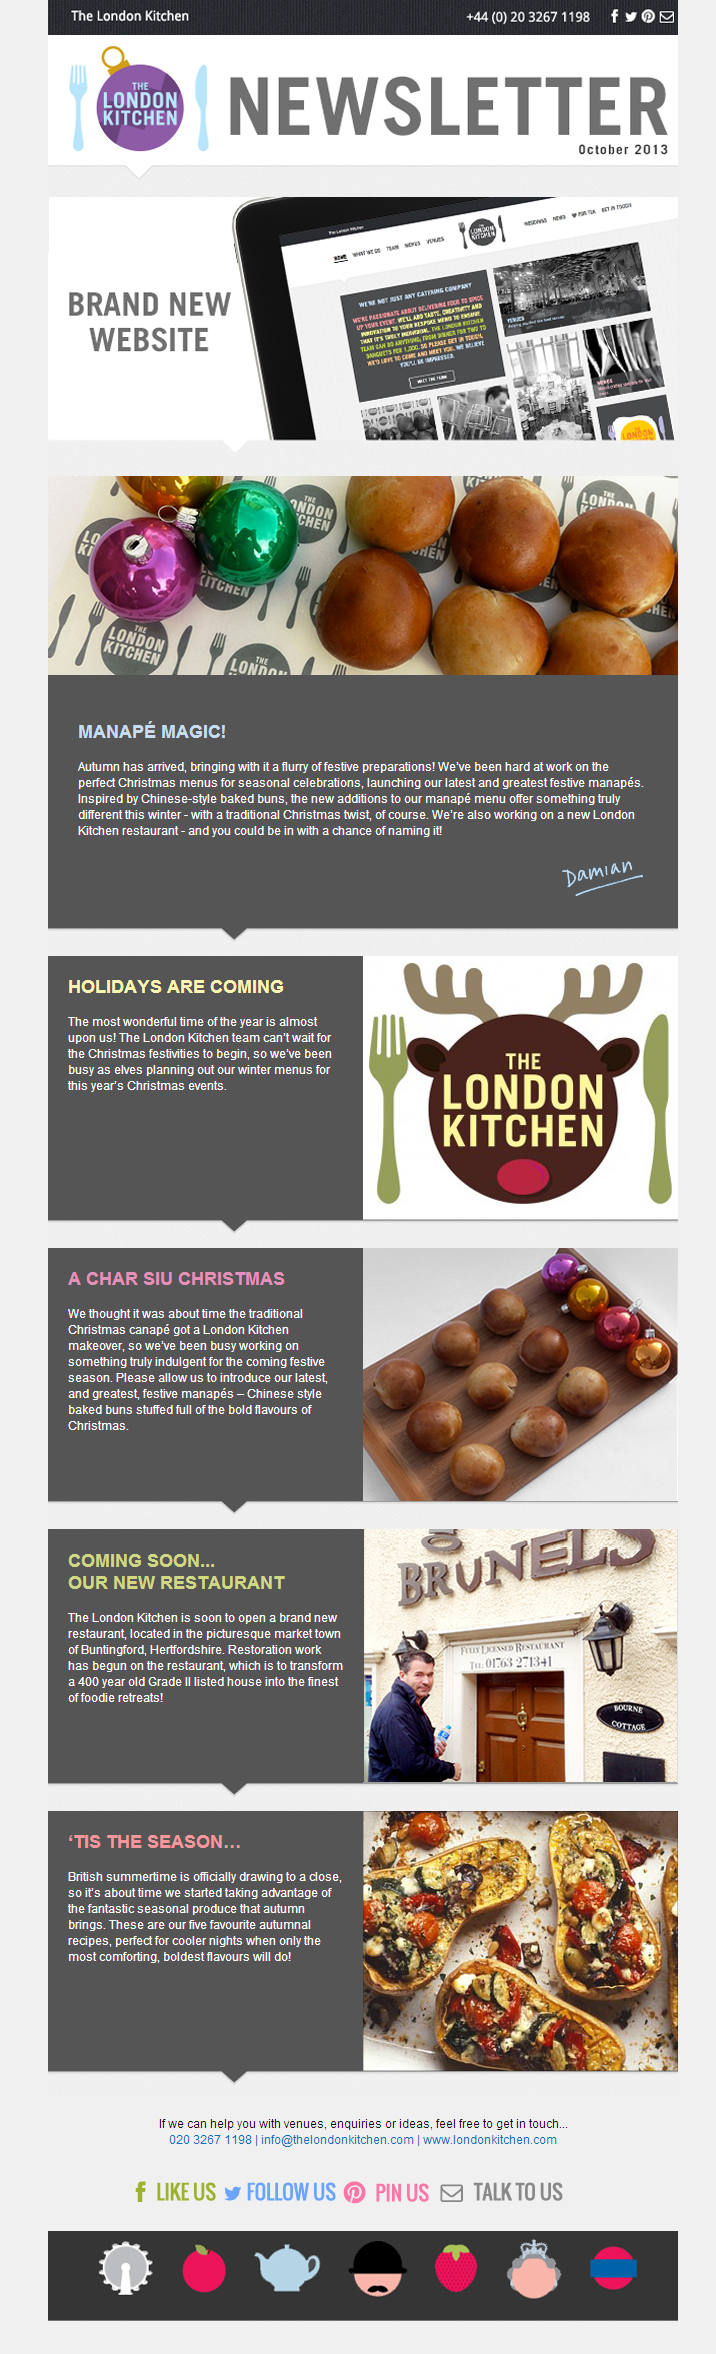 gooddesign-londonkitchen